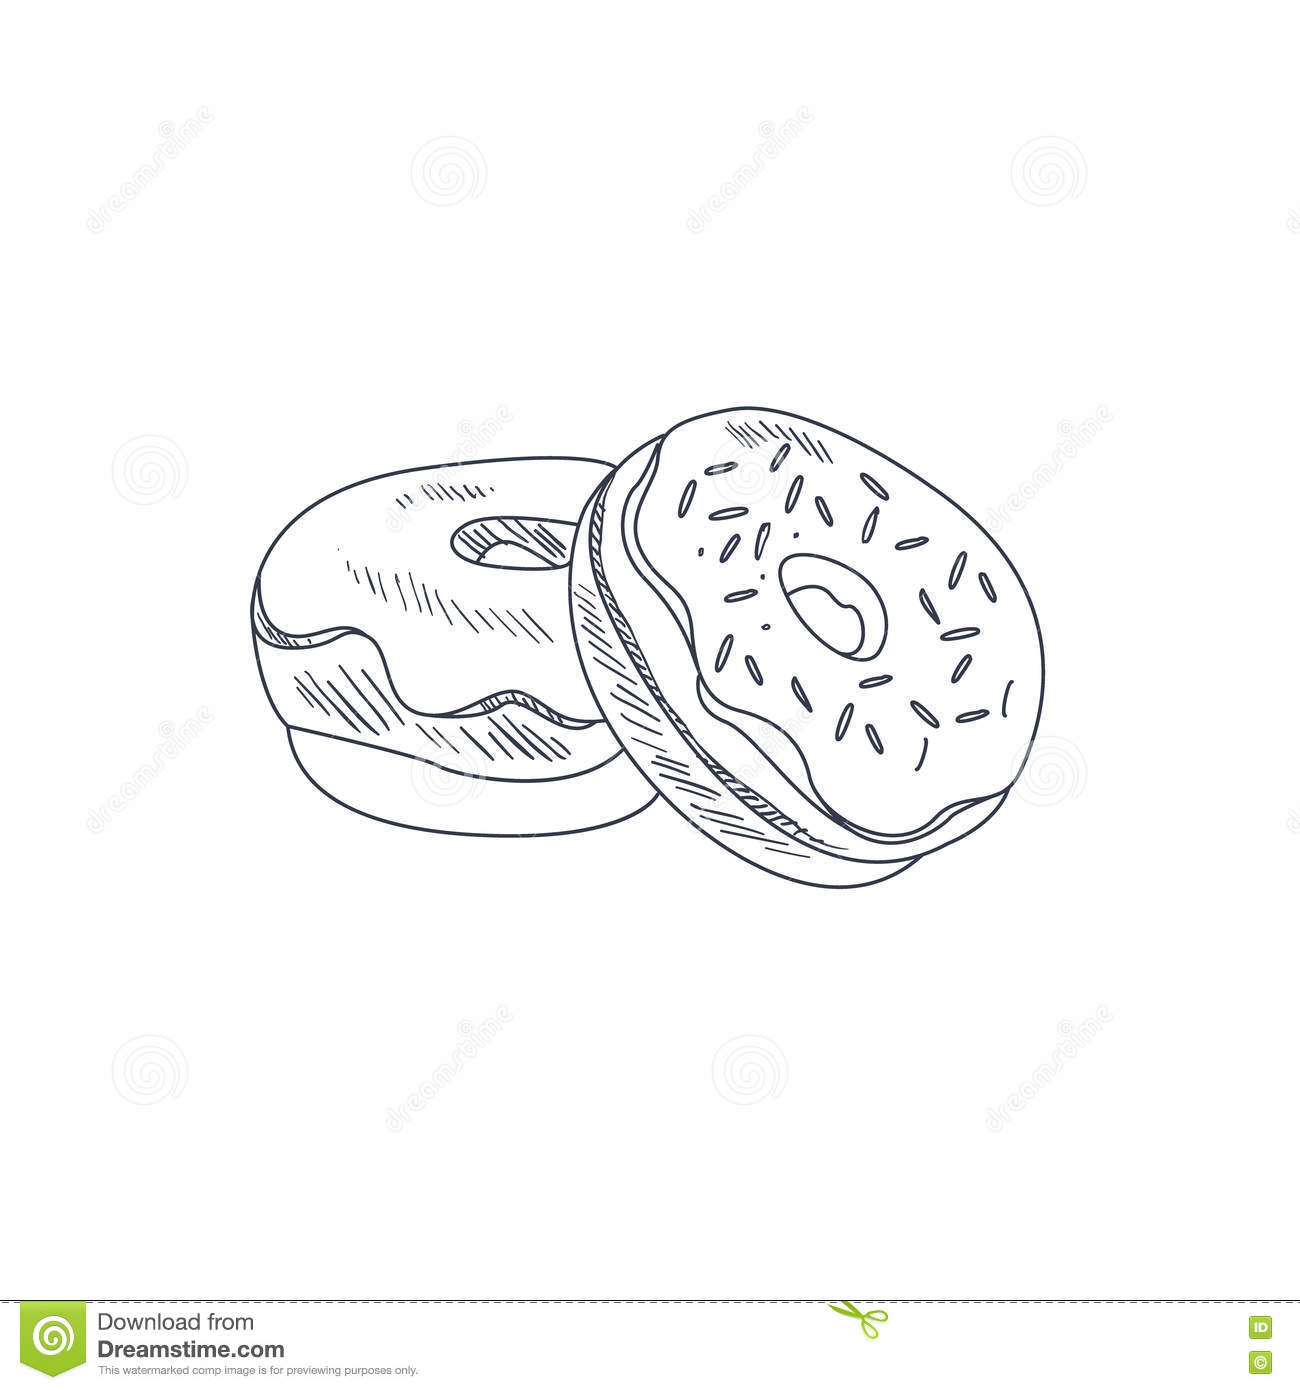 Donuts Hand Drawn Sketch Stock Vector - Image: 71314598